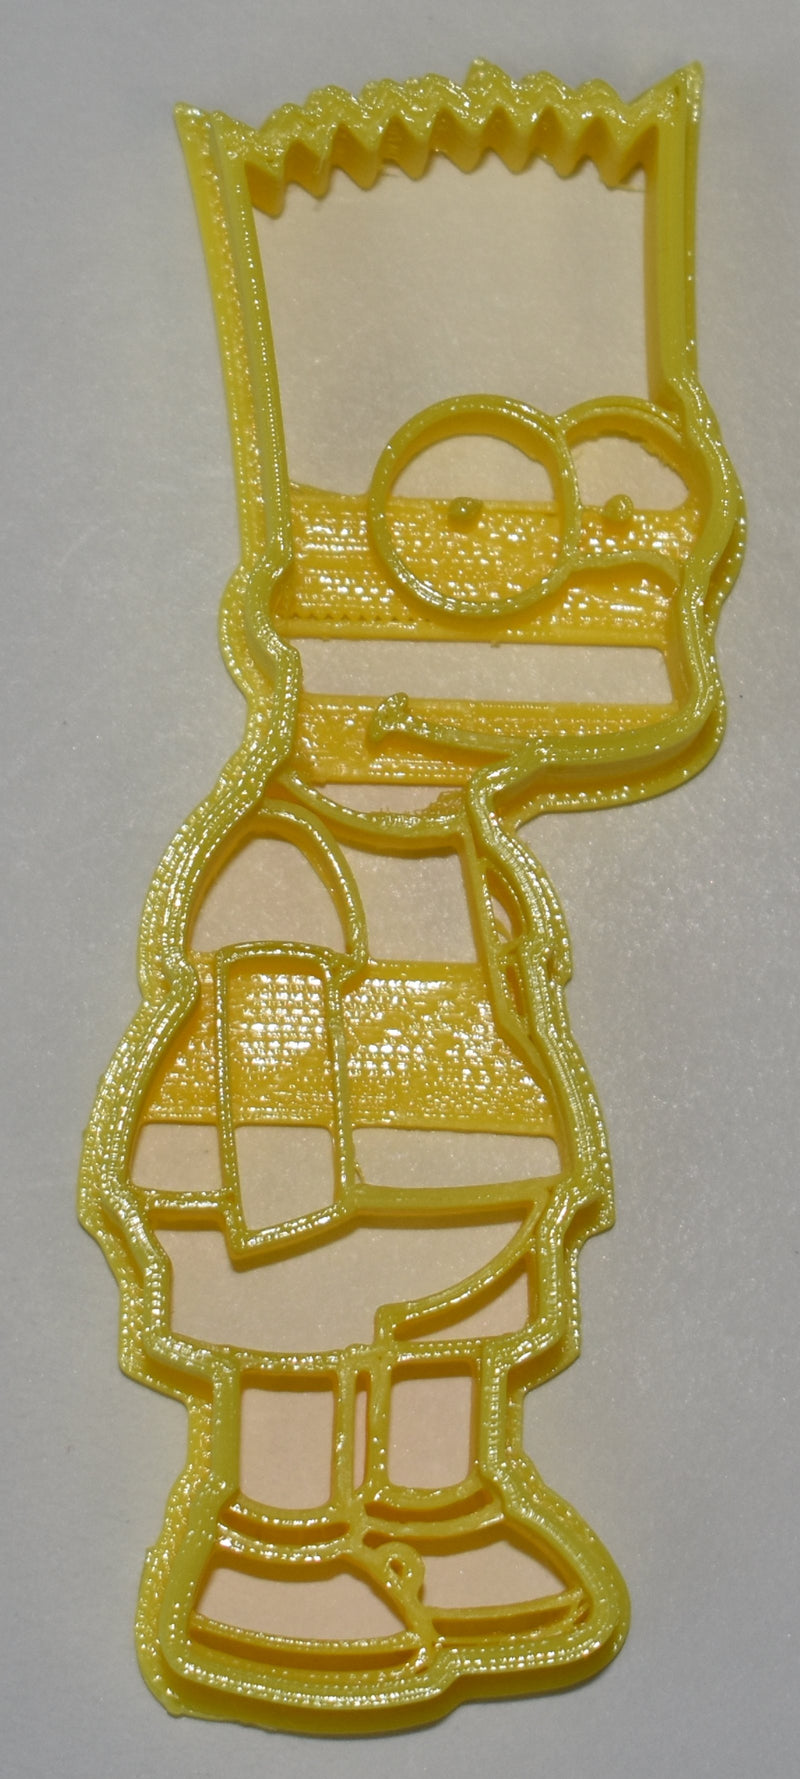 Bart Simpson Character from The Simpson/'s Cartoon Special Occasion Cookie Cutter